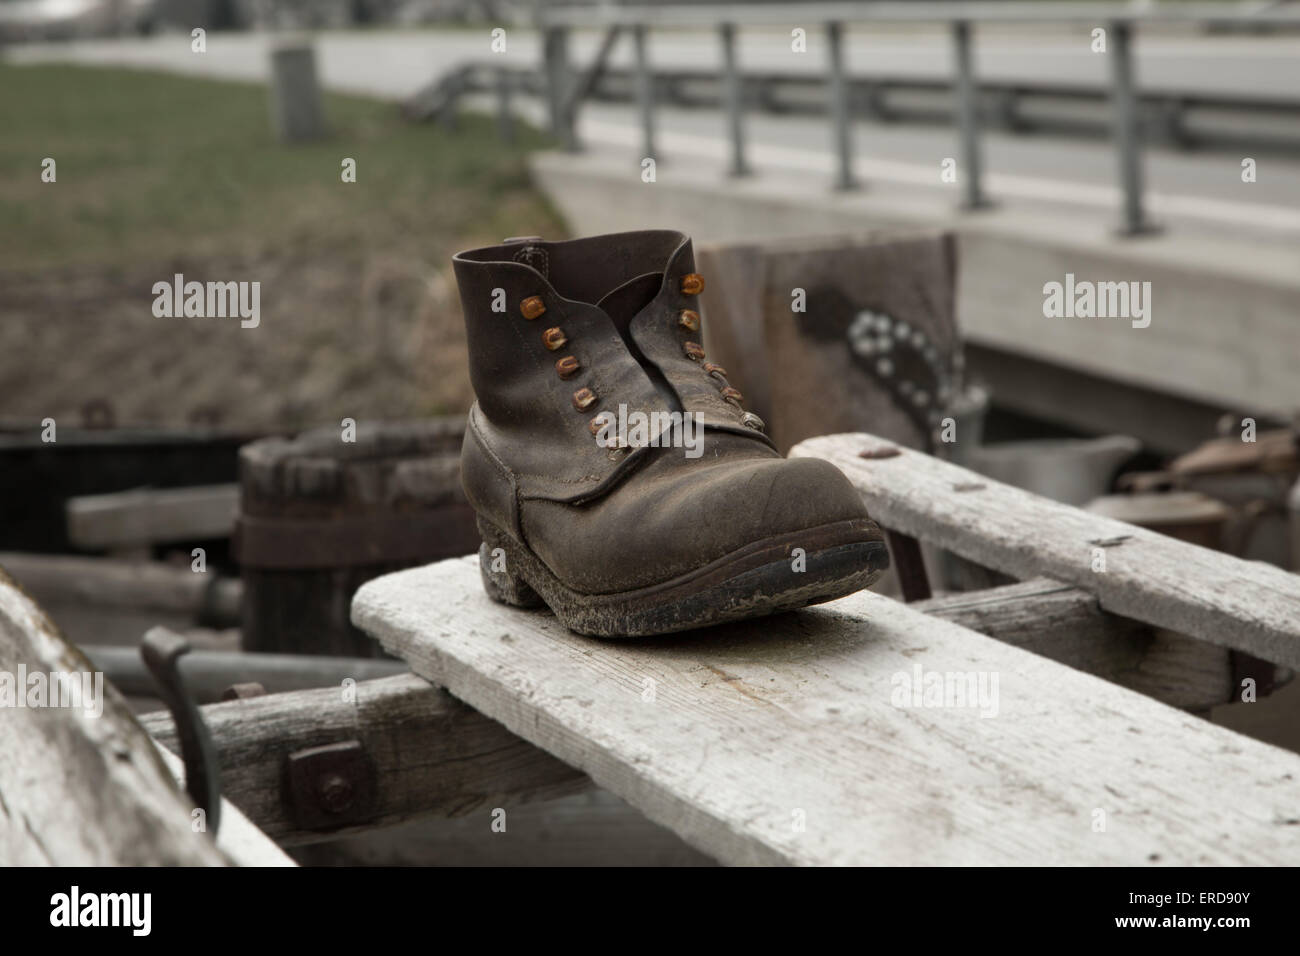 Single old fashion shoe on a wooden table - Stock Image